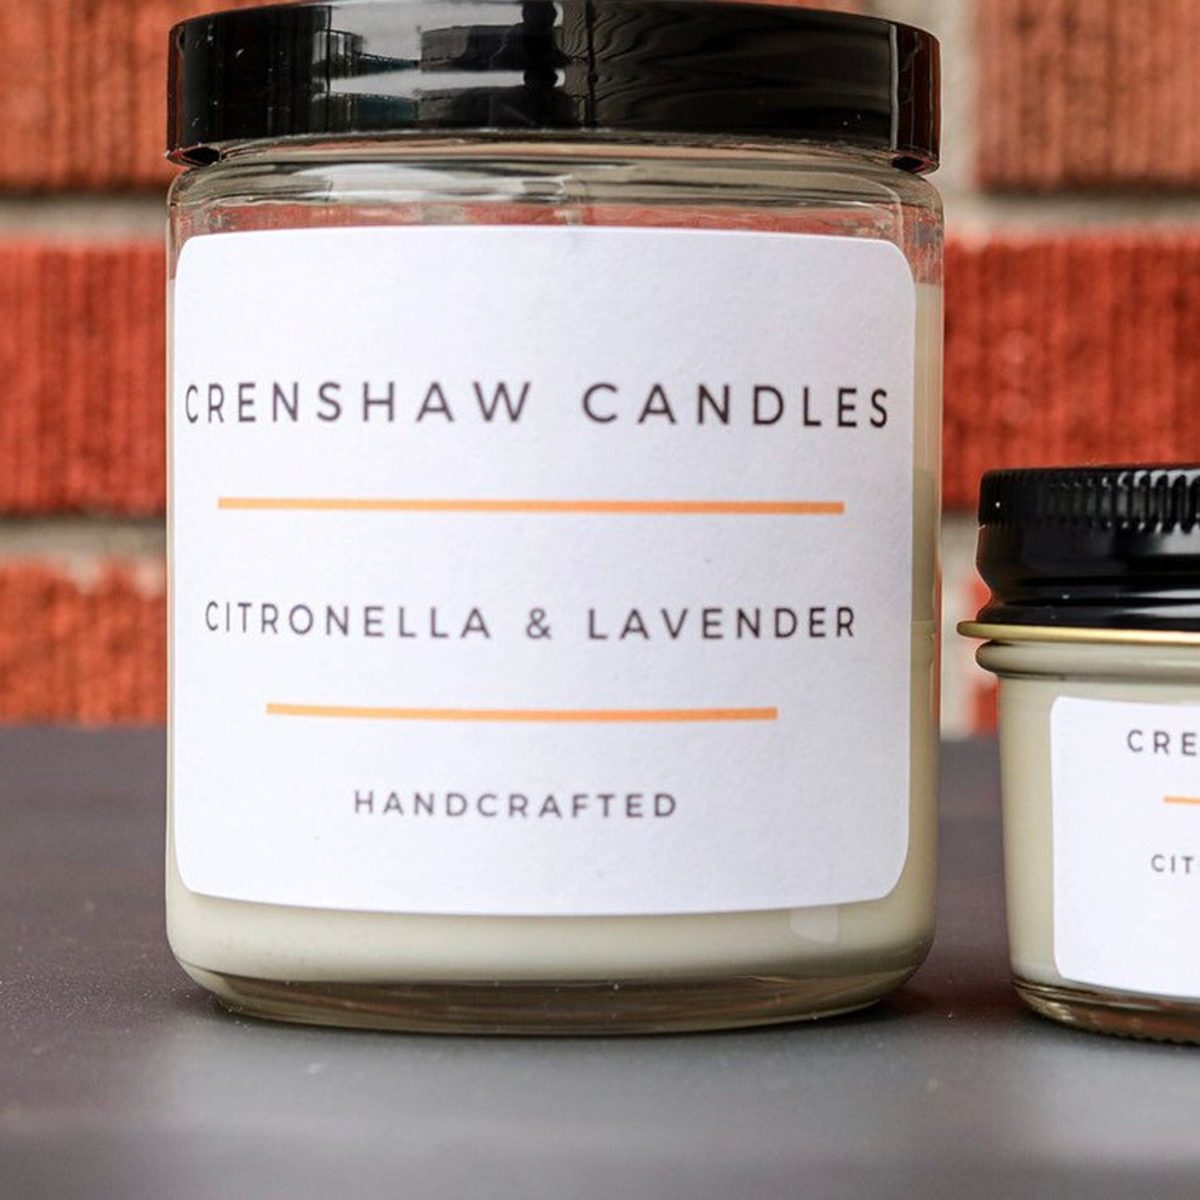 Citronella & Lavender Keep those pesky mosquitoes away.